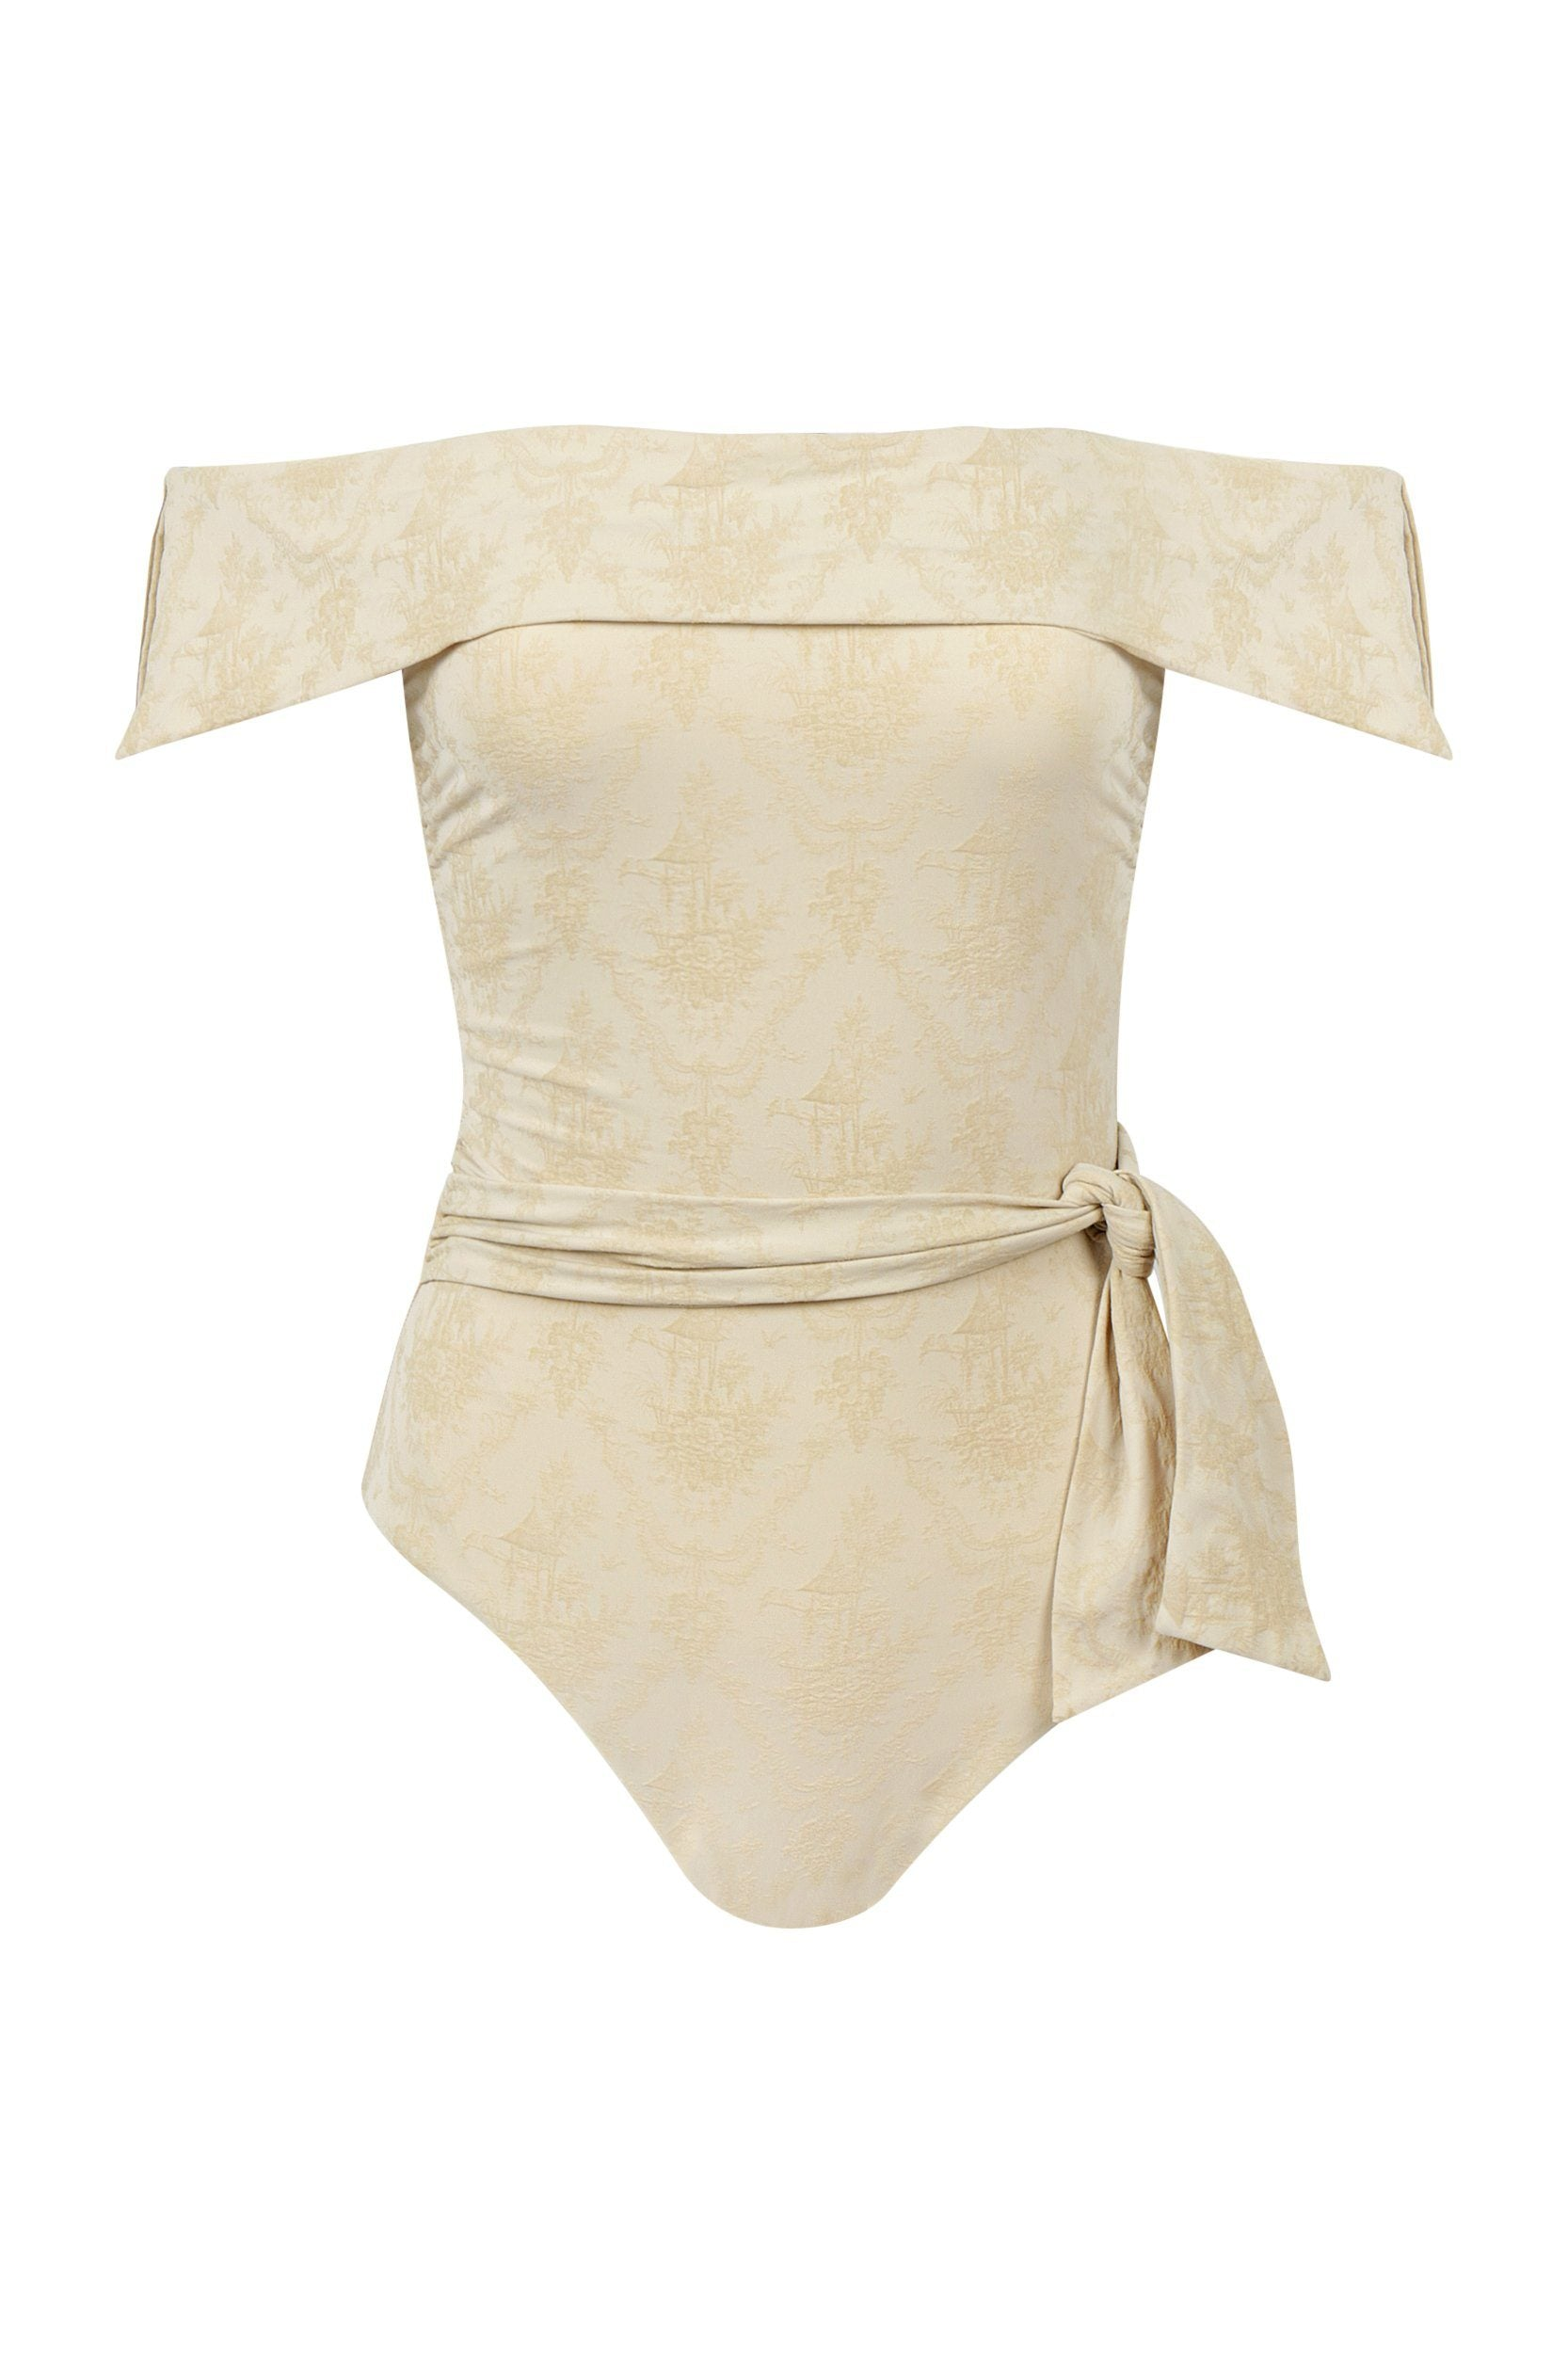 Ingrid Maillot – Birch Toile